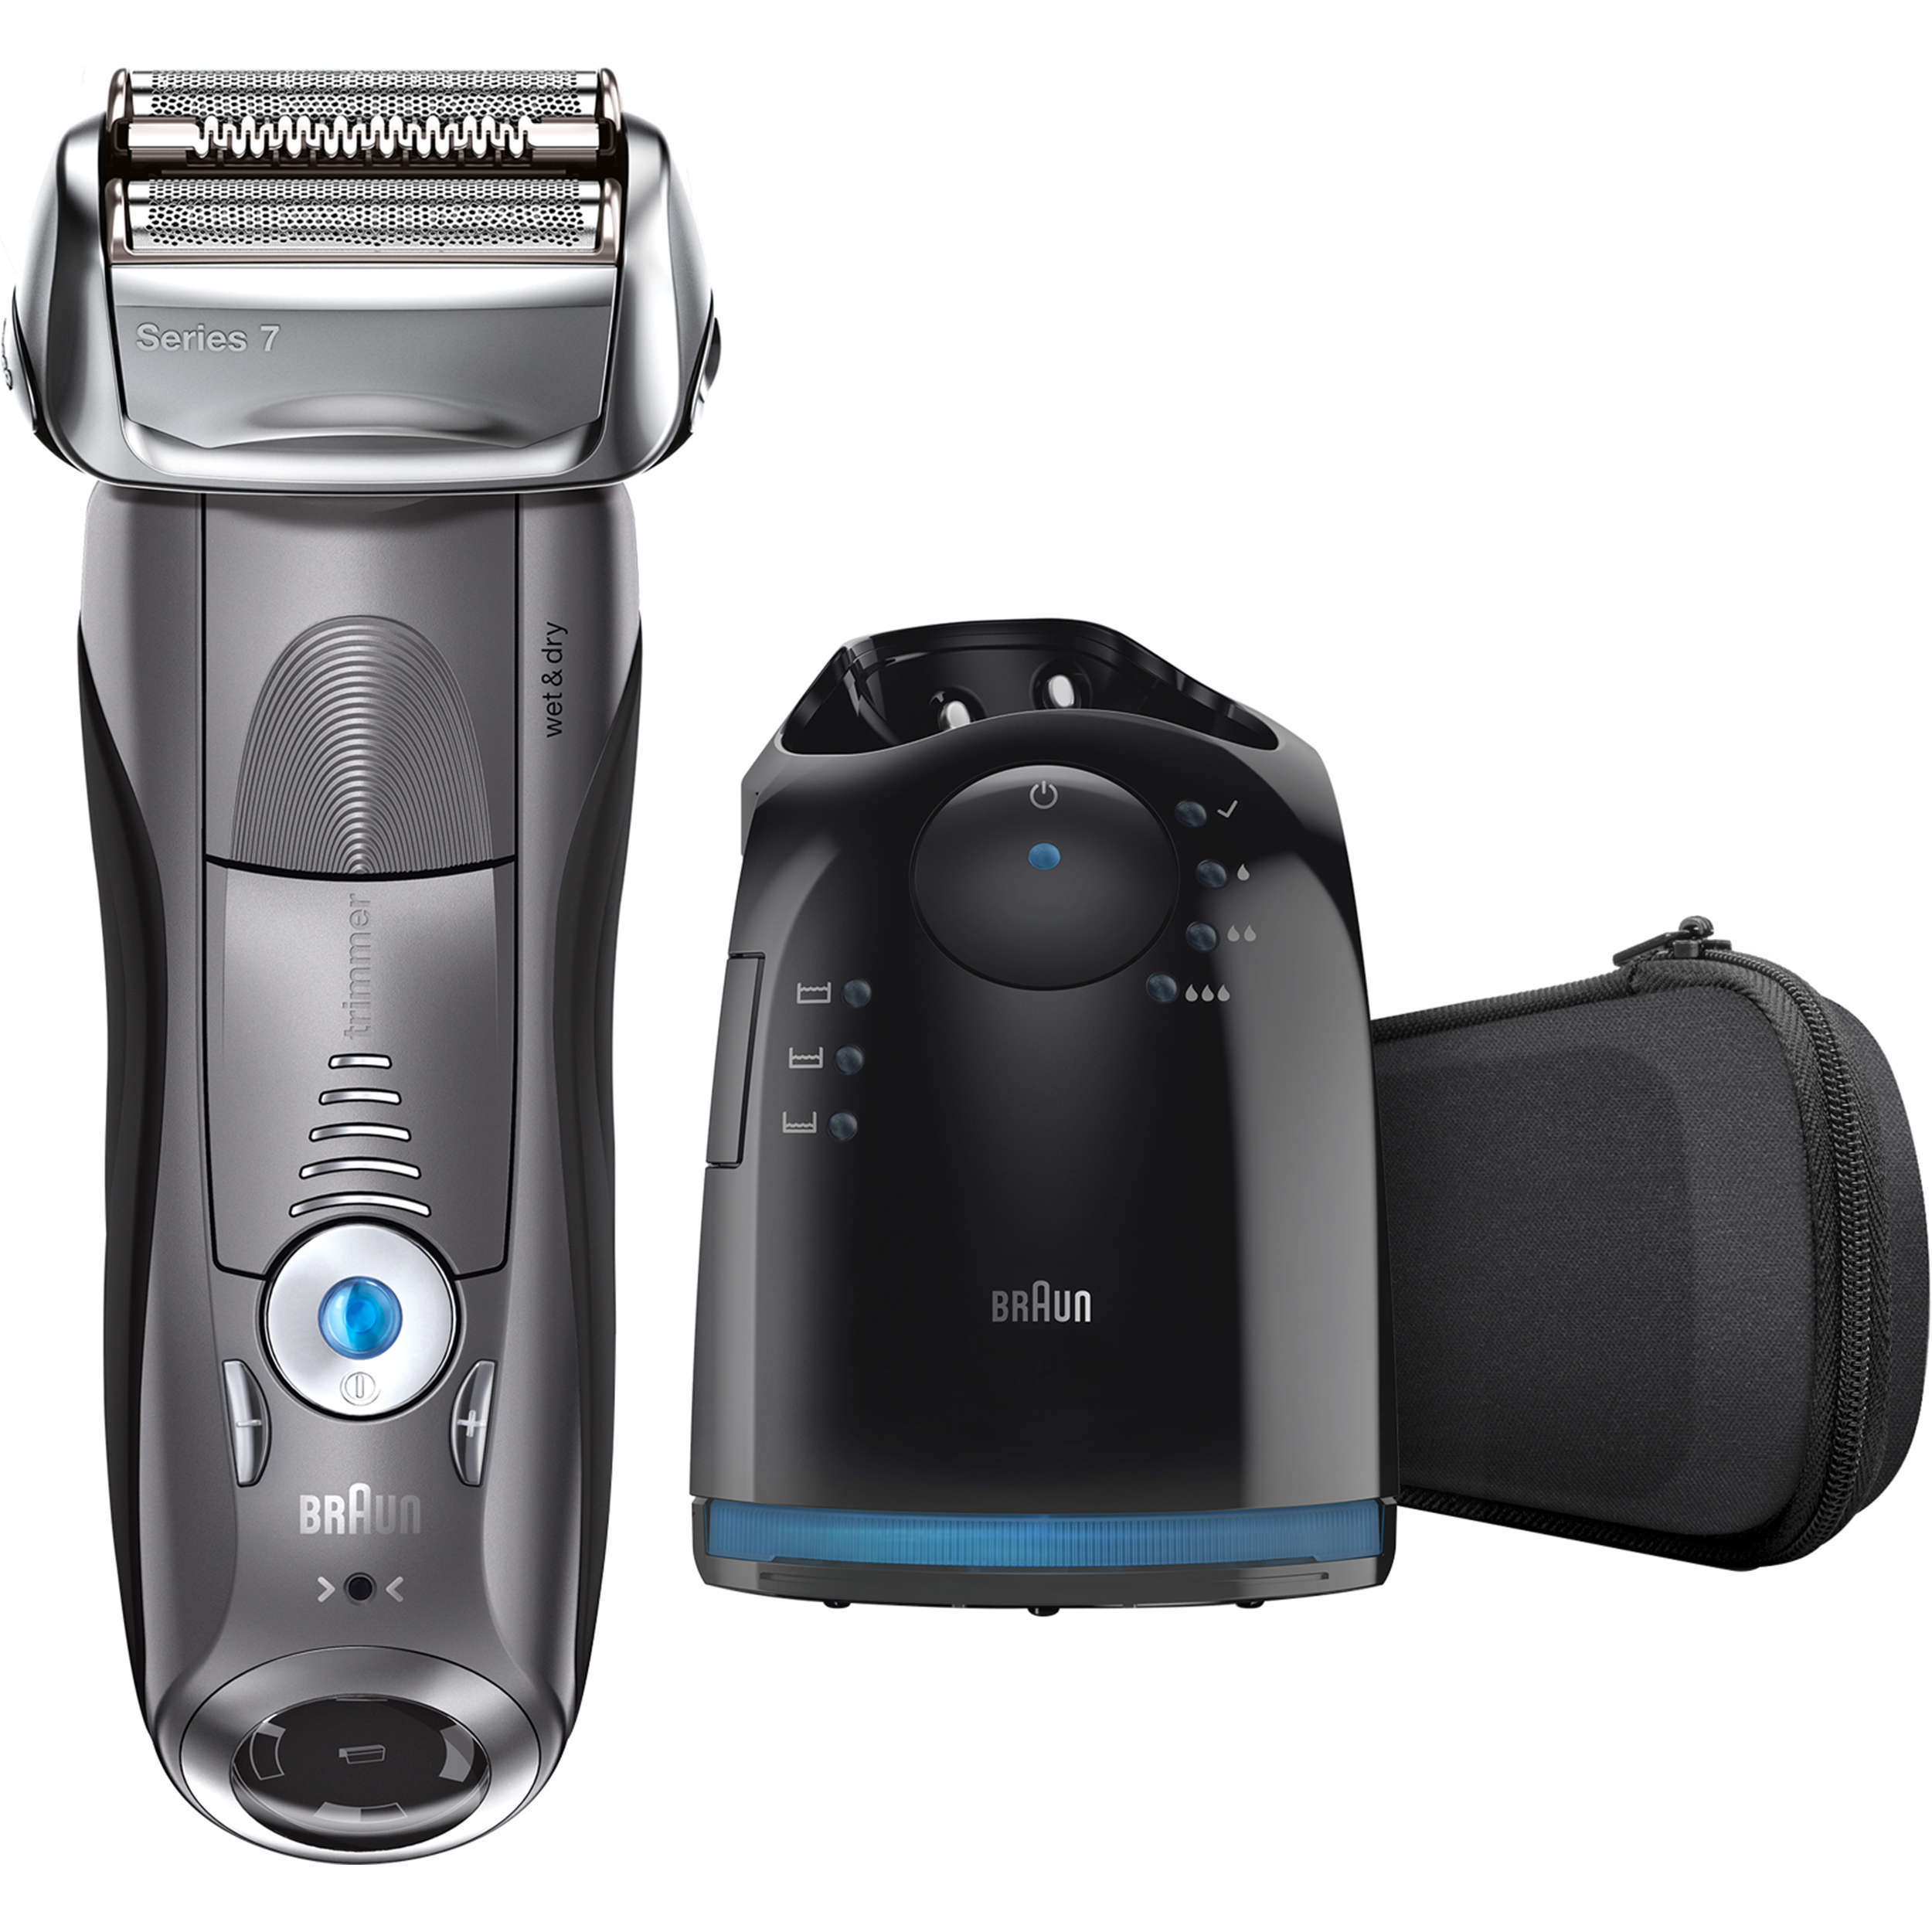 Braun Series 7 7865cc ($35 Rebate Available) Men's Electric Foil Shaver, Wet and Dry Razor with Clean & Charge Station